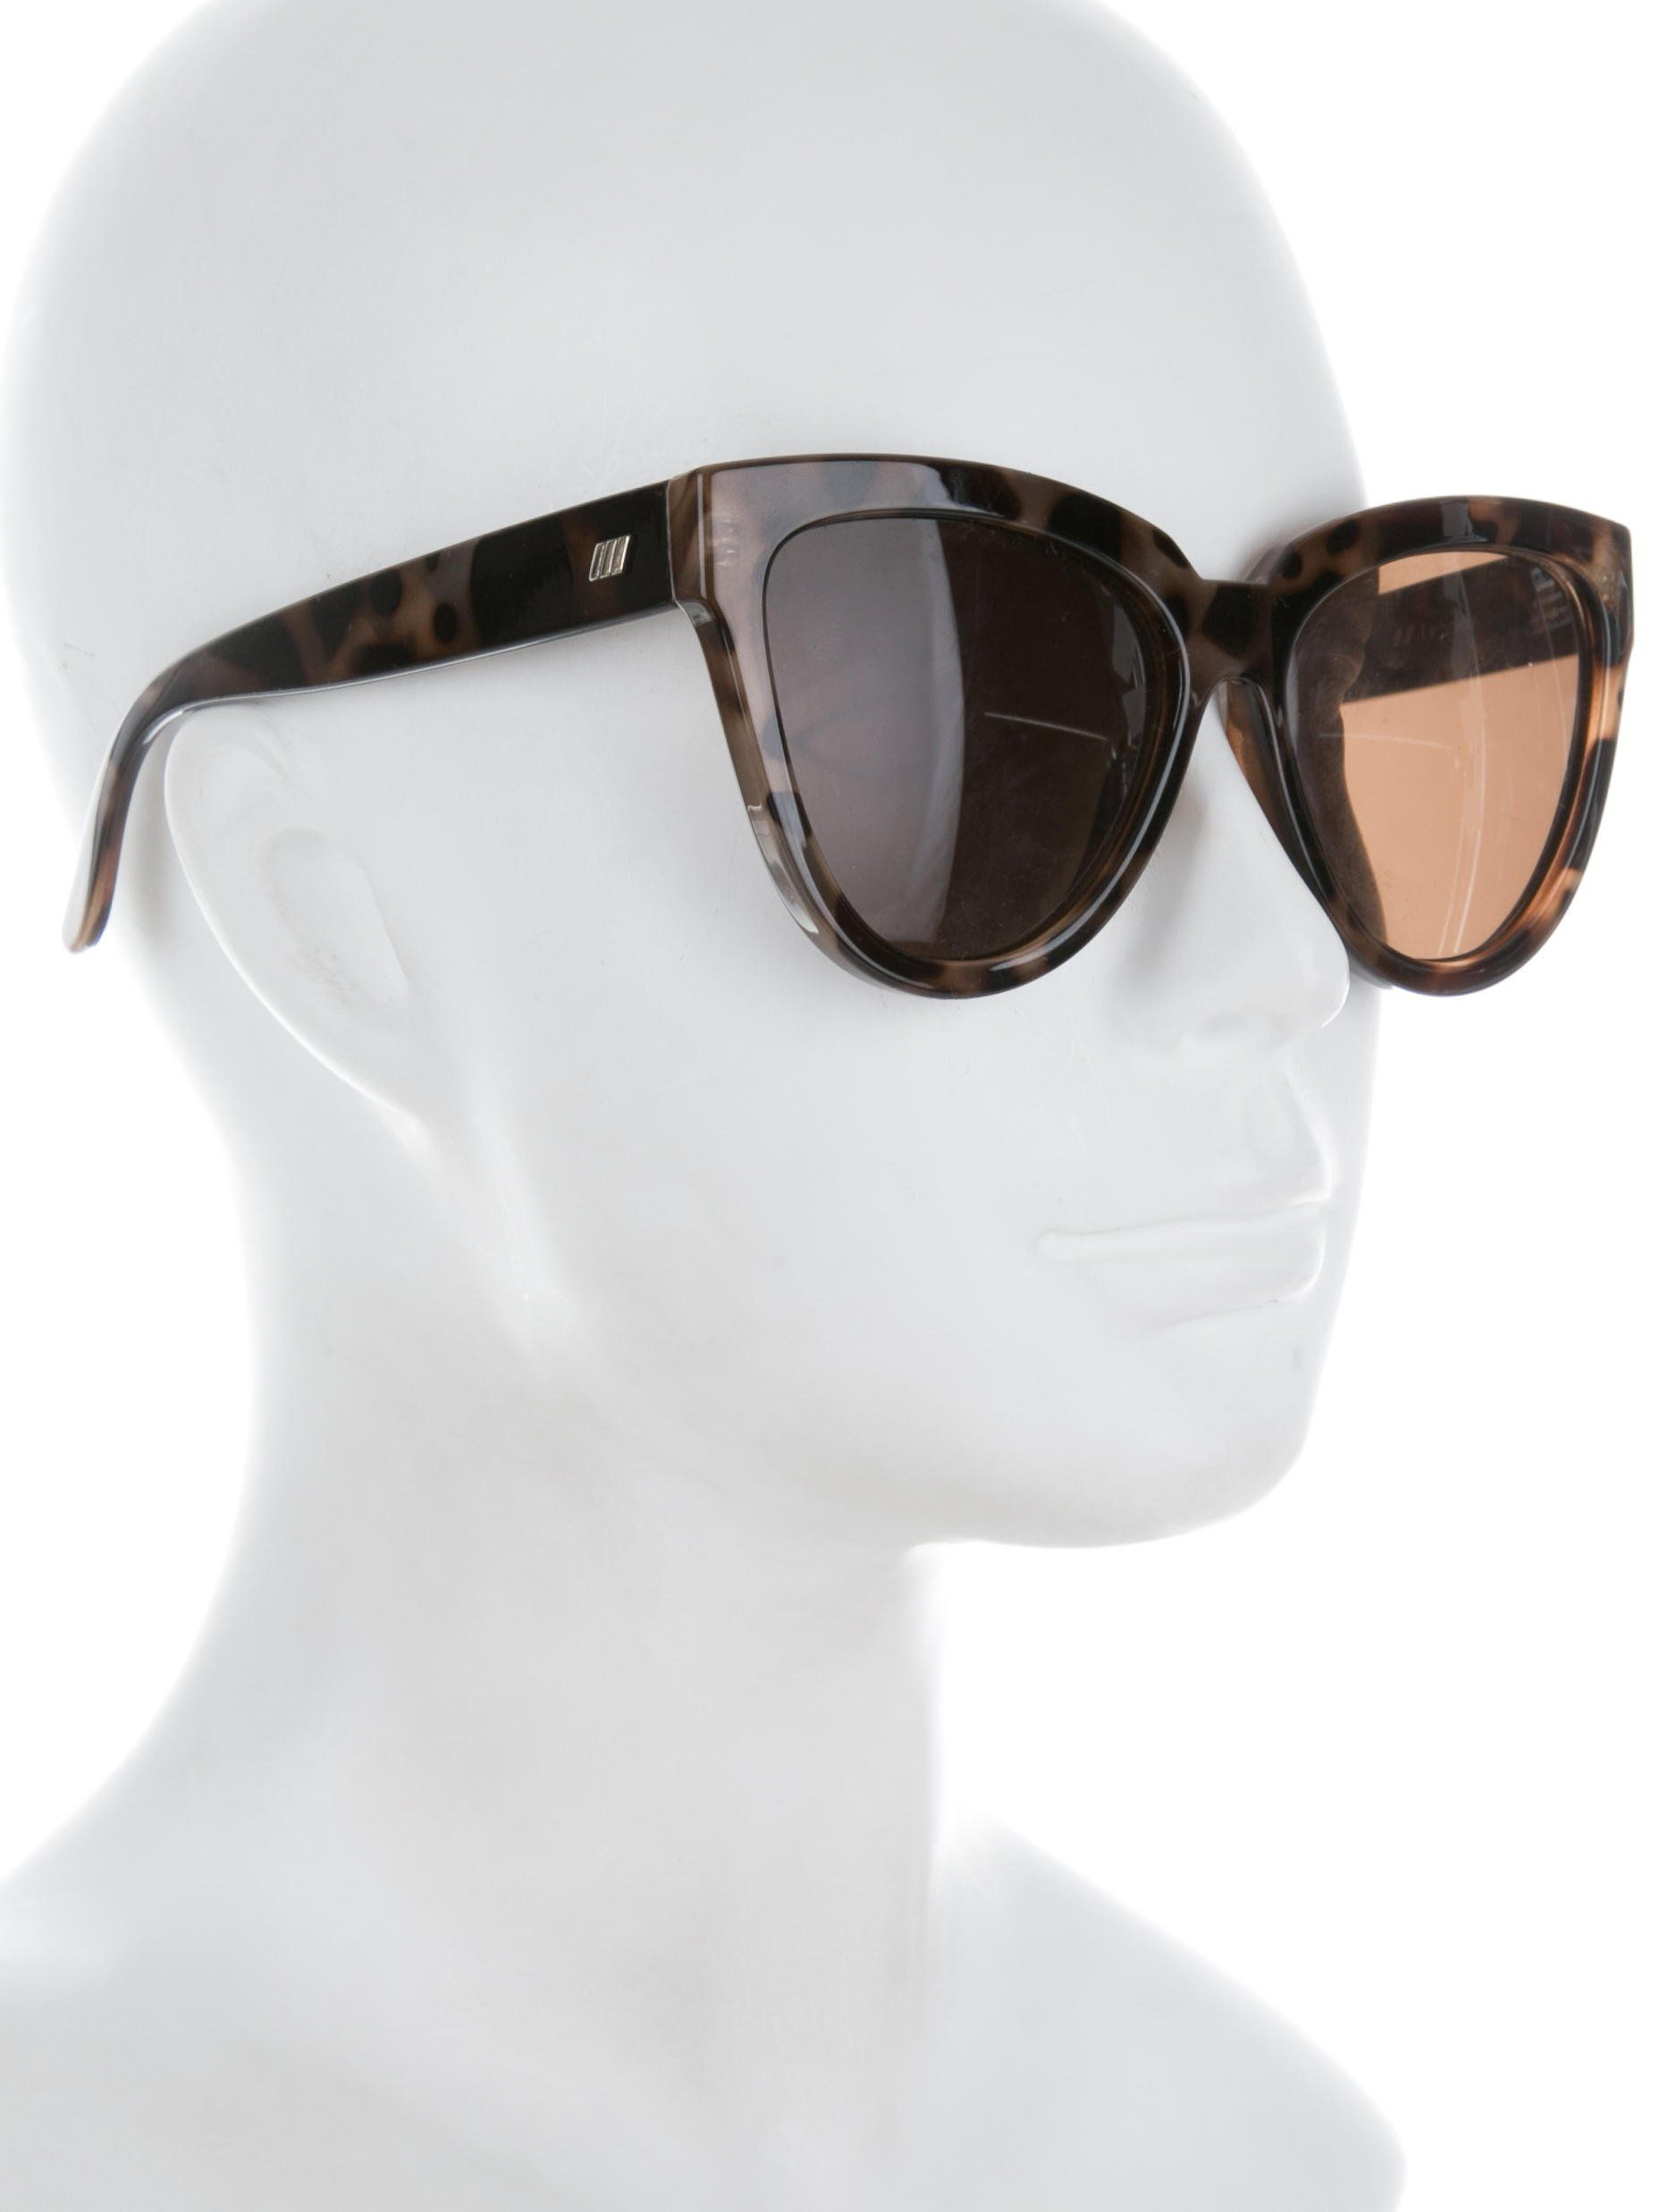 67d7bfa9075da Brown and beige tortoiseshell acetate Le Specs Liar Lair cat-eye sunglasses  with tinted lenses and silver-tone logo accents at temples.